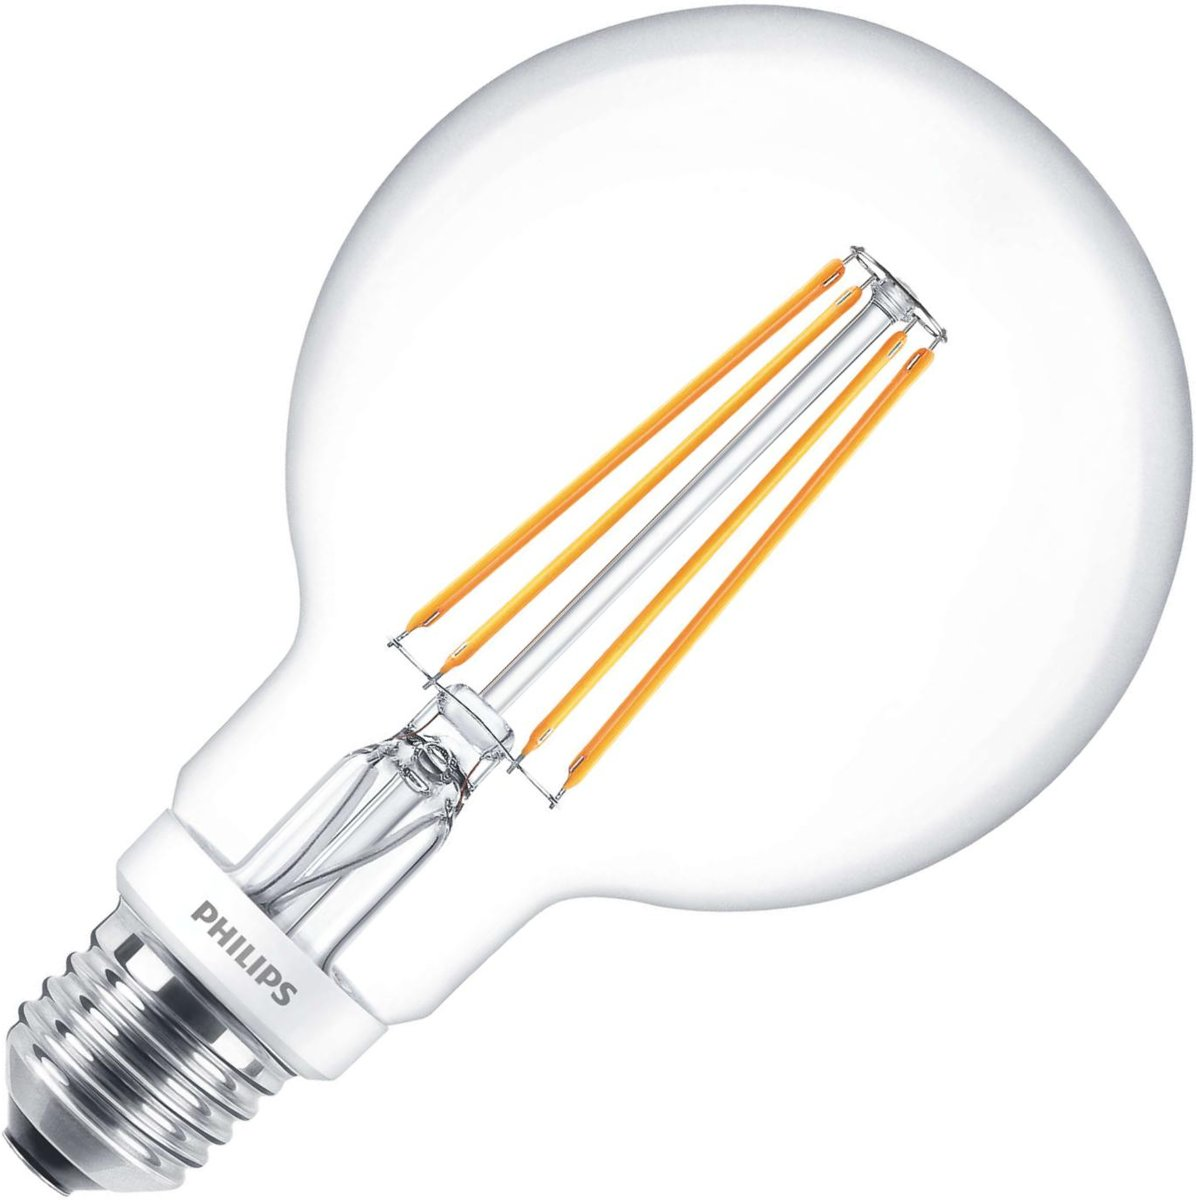 bol.com | Philips Led lamp kopen? Alle Led lampen online